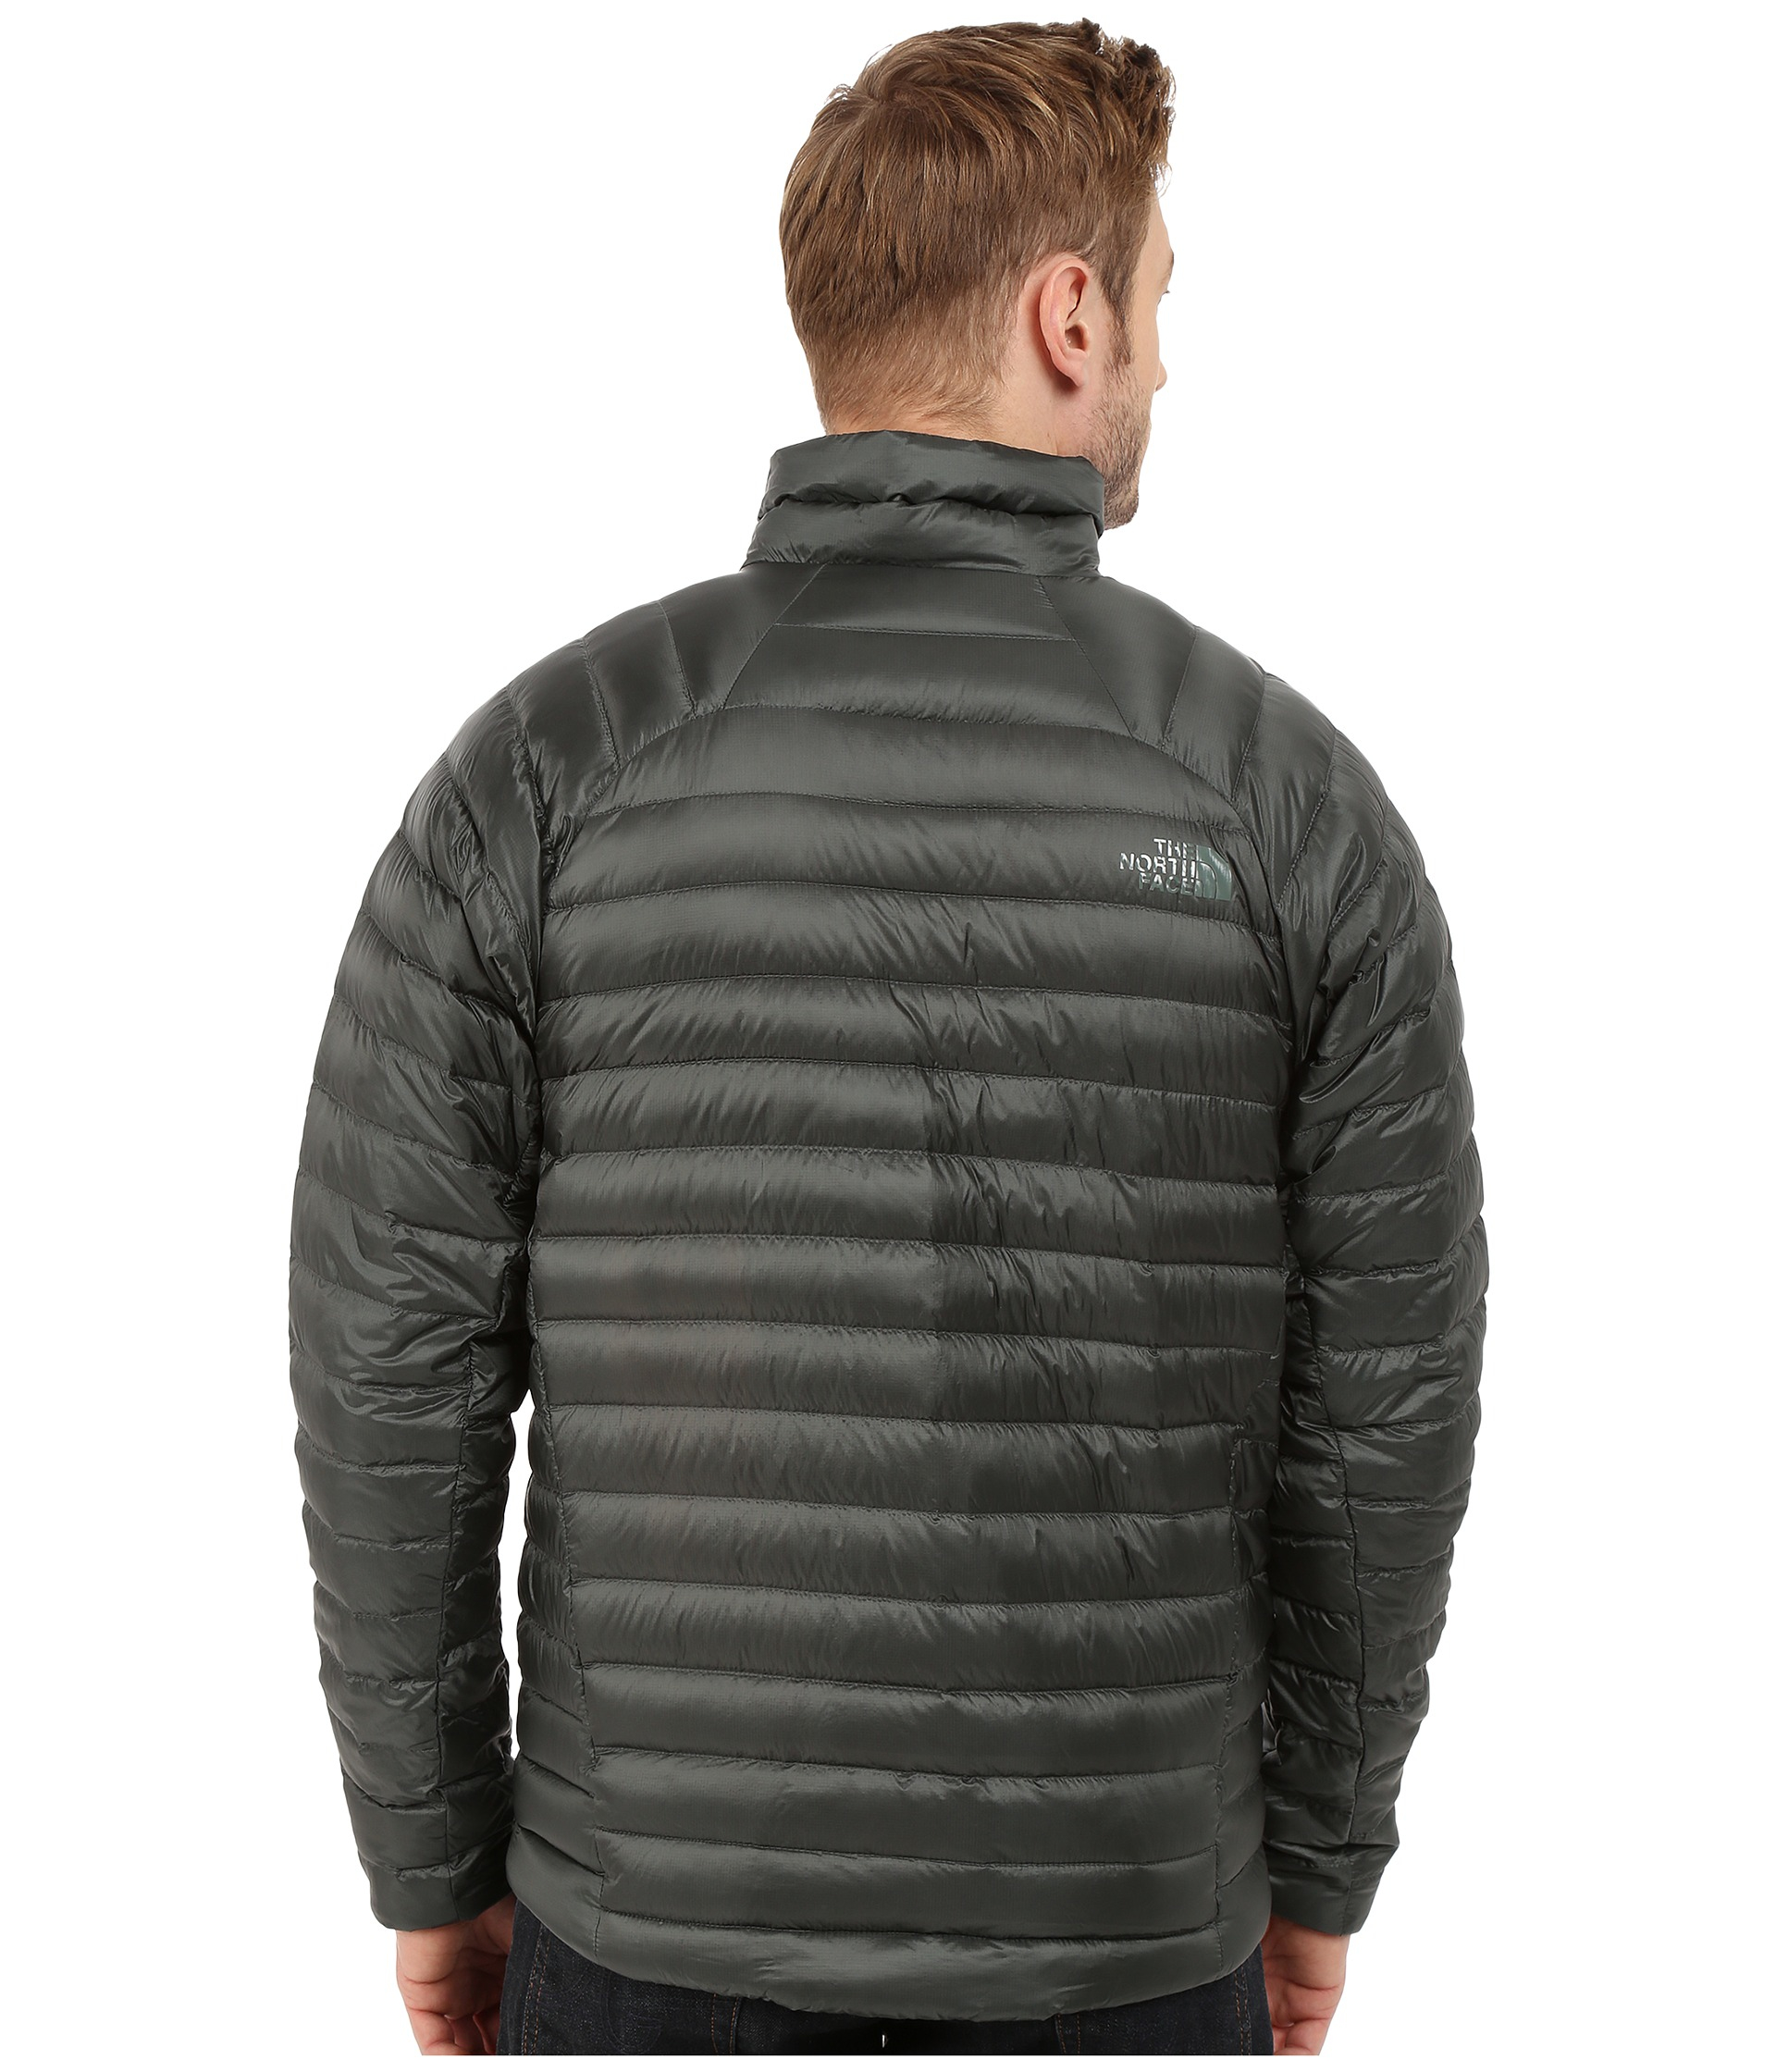 c9ffc845af ... wholesale lyst the north face quince jacket in green for men 9cd8f 1b968